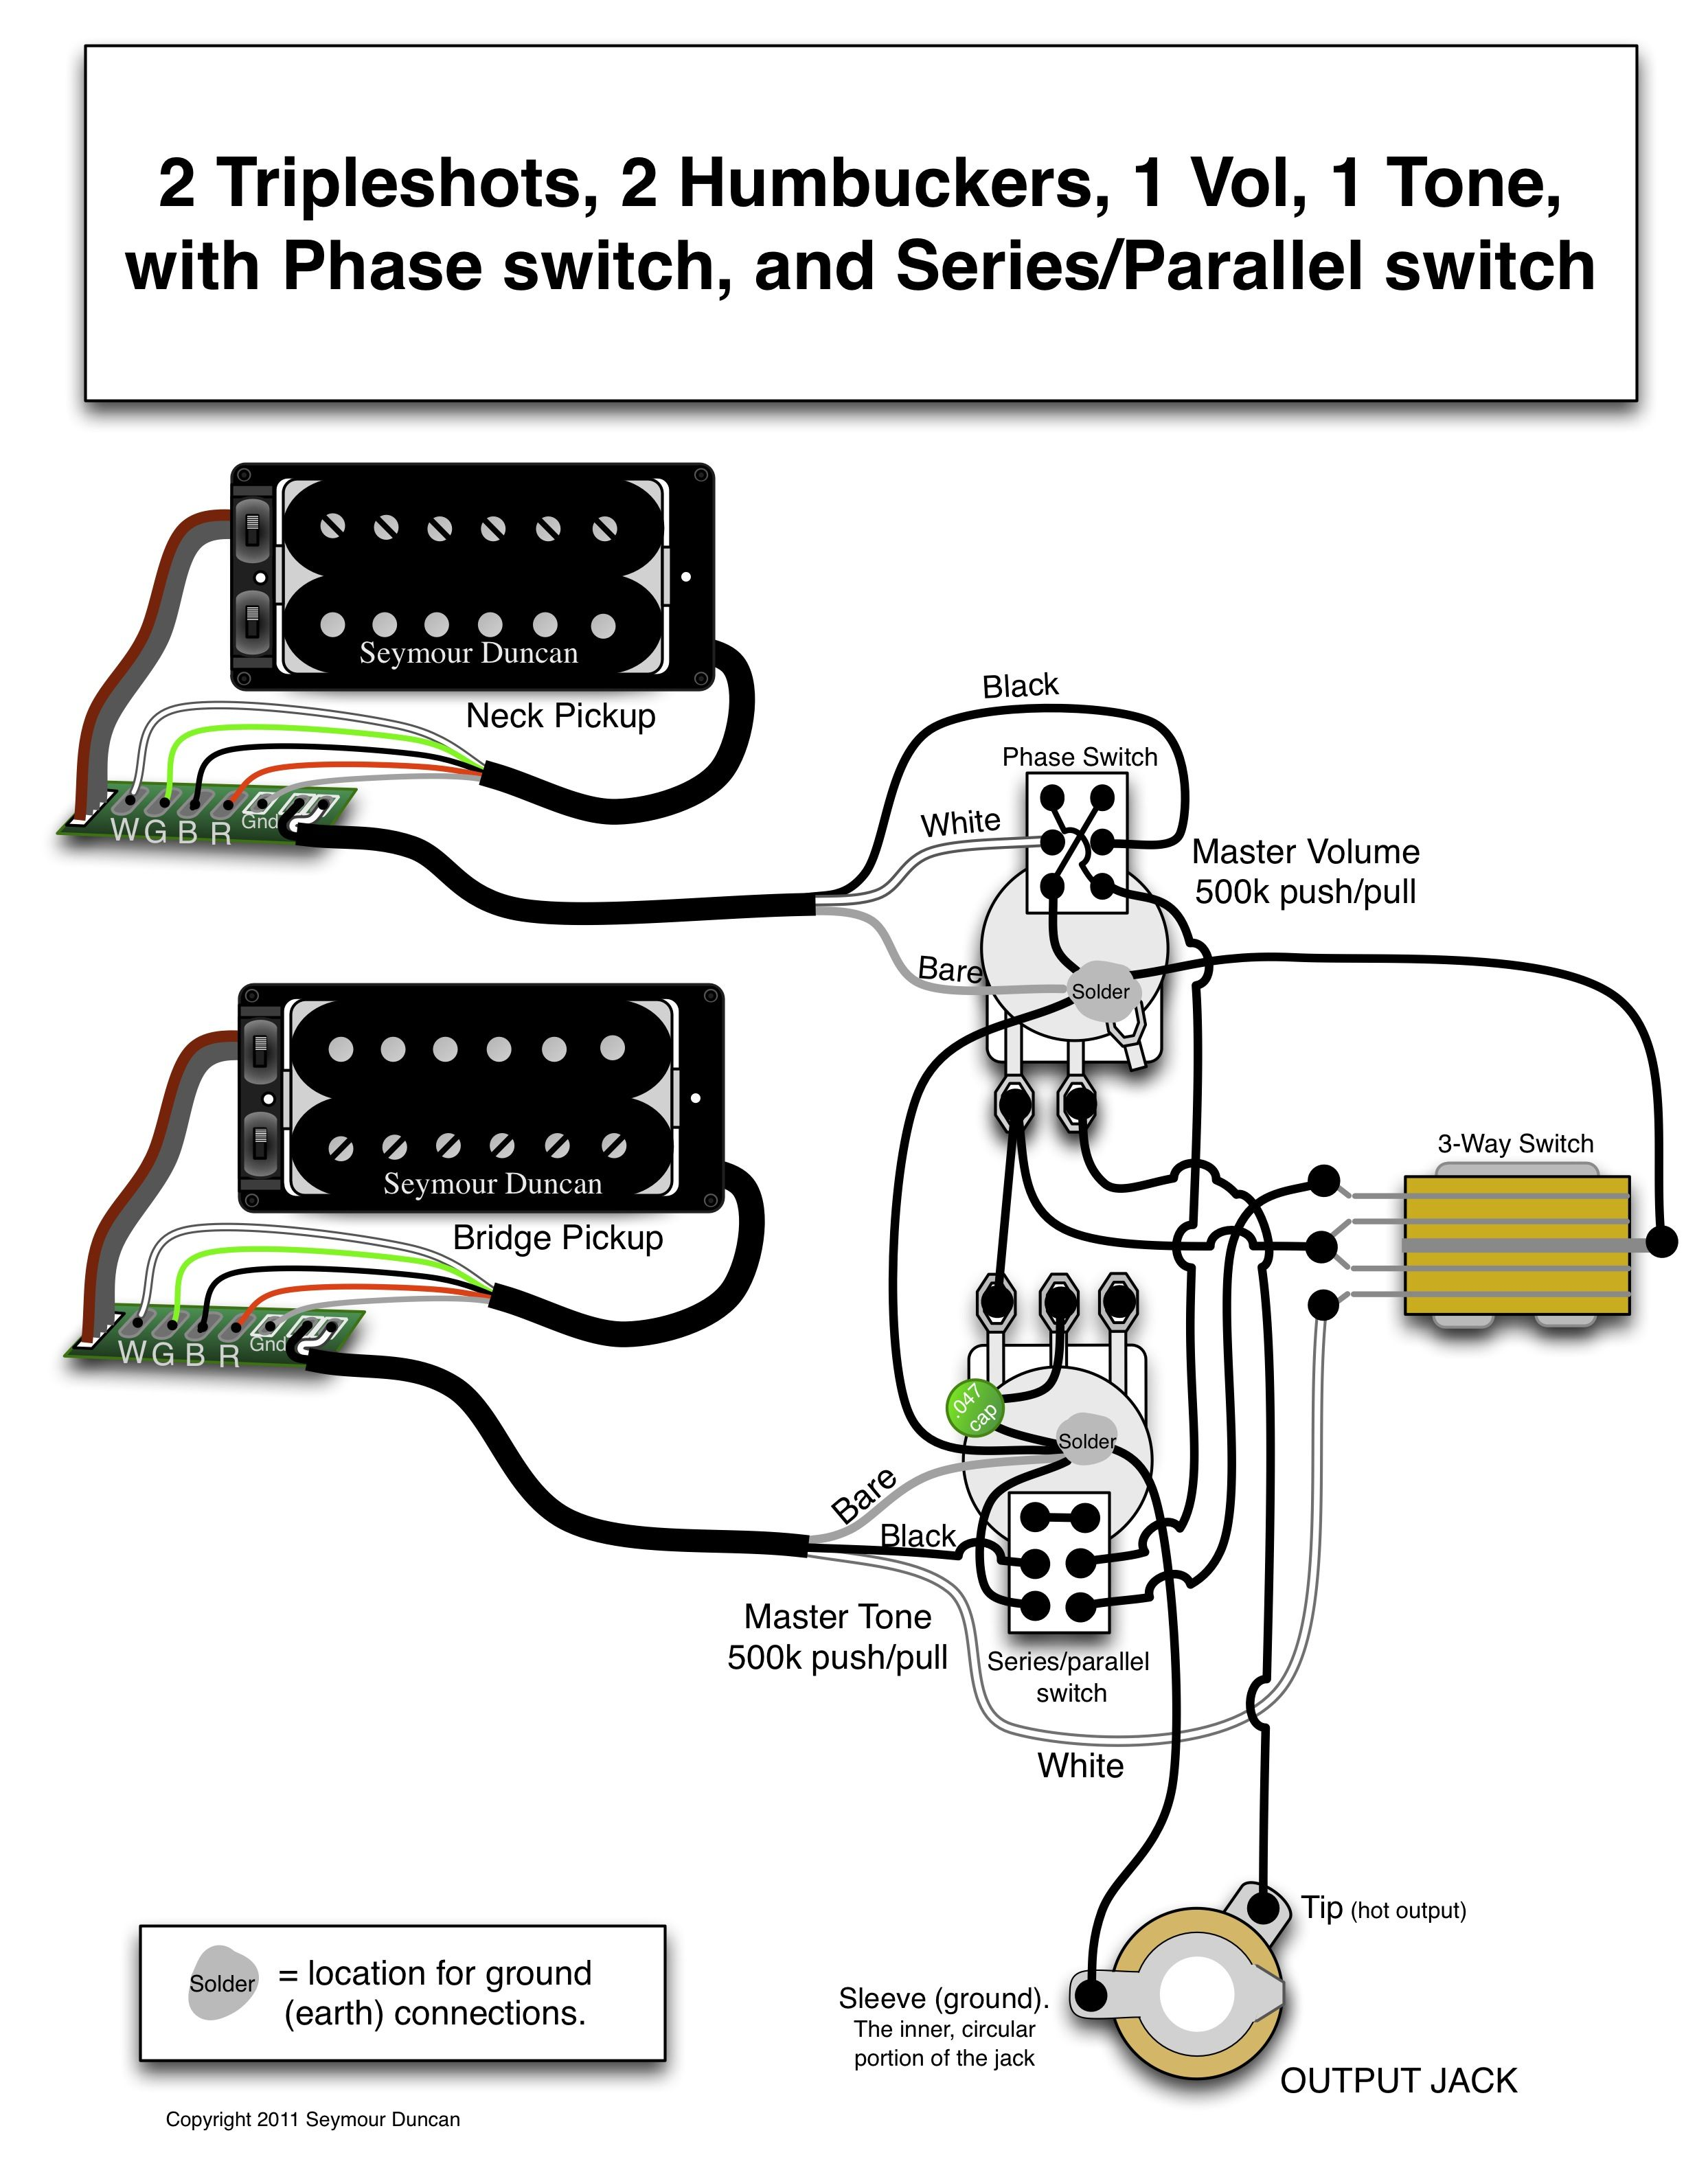 Shr 1 wiring diagram seymour duncan wiring diagram shr 1 wiring diagram seymour duncan images gallery cheapraybanclubmaster Image collections